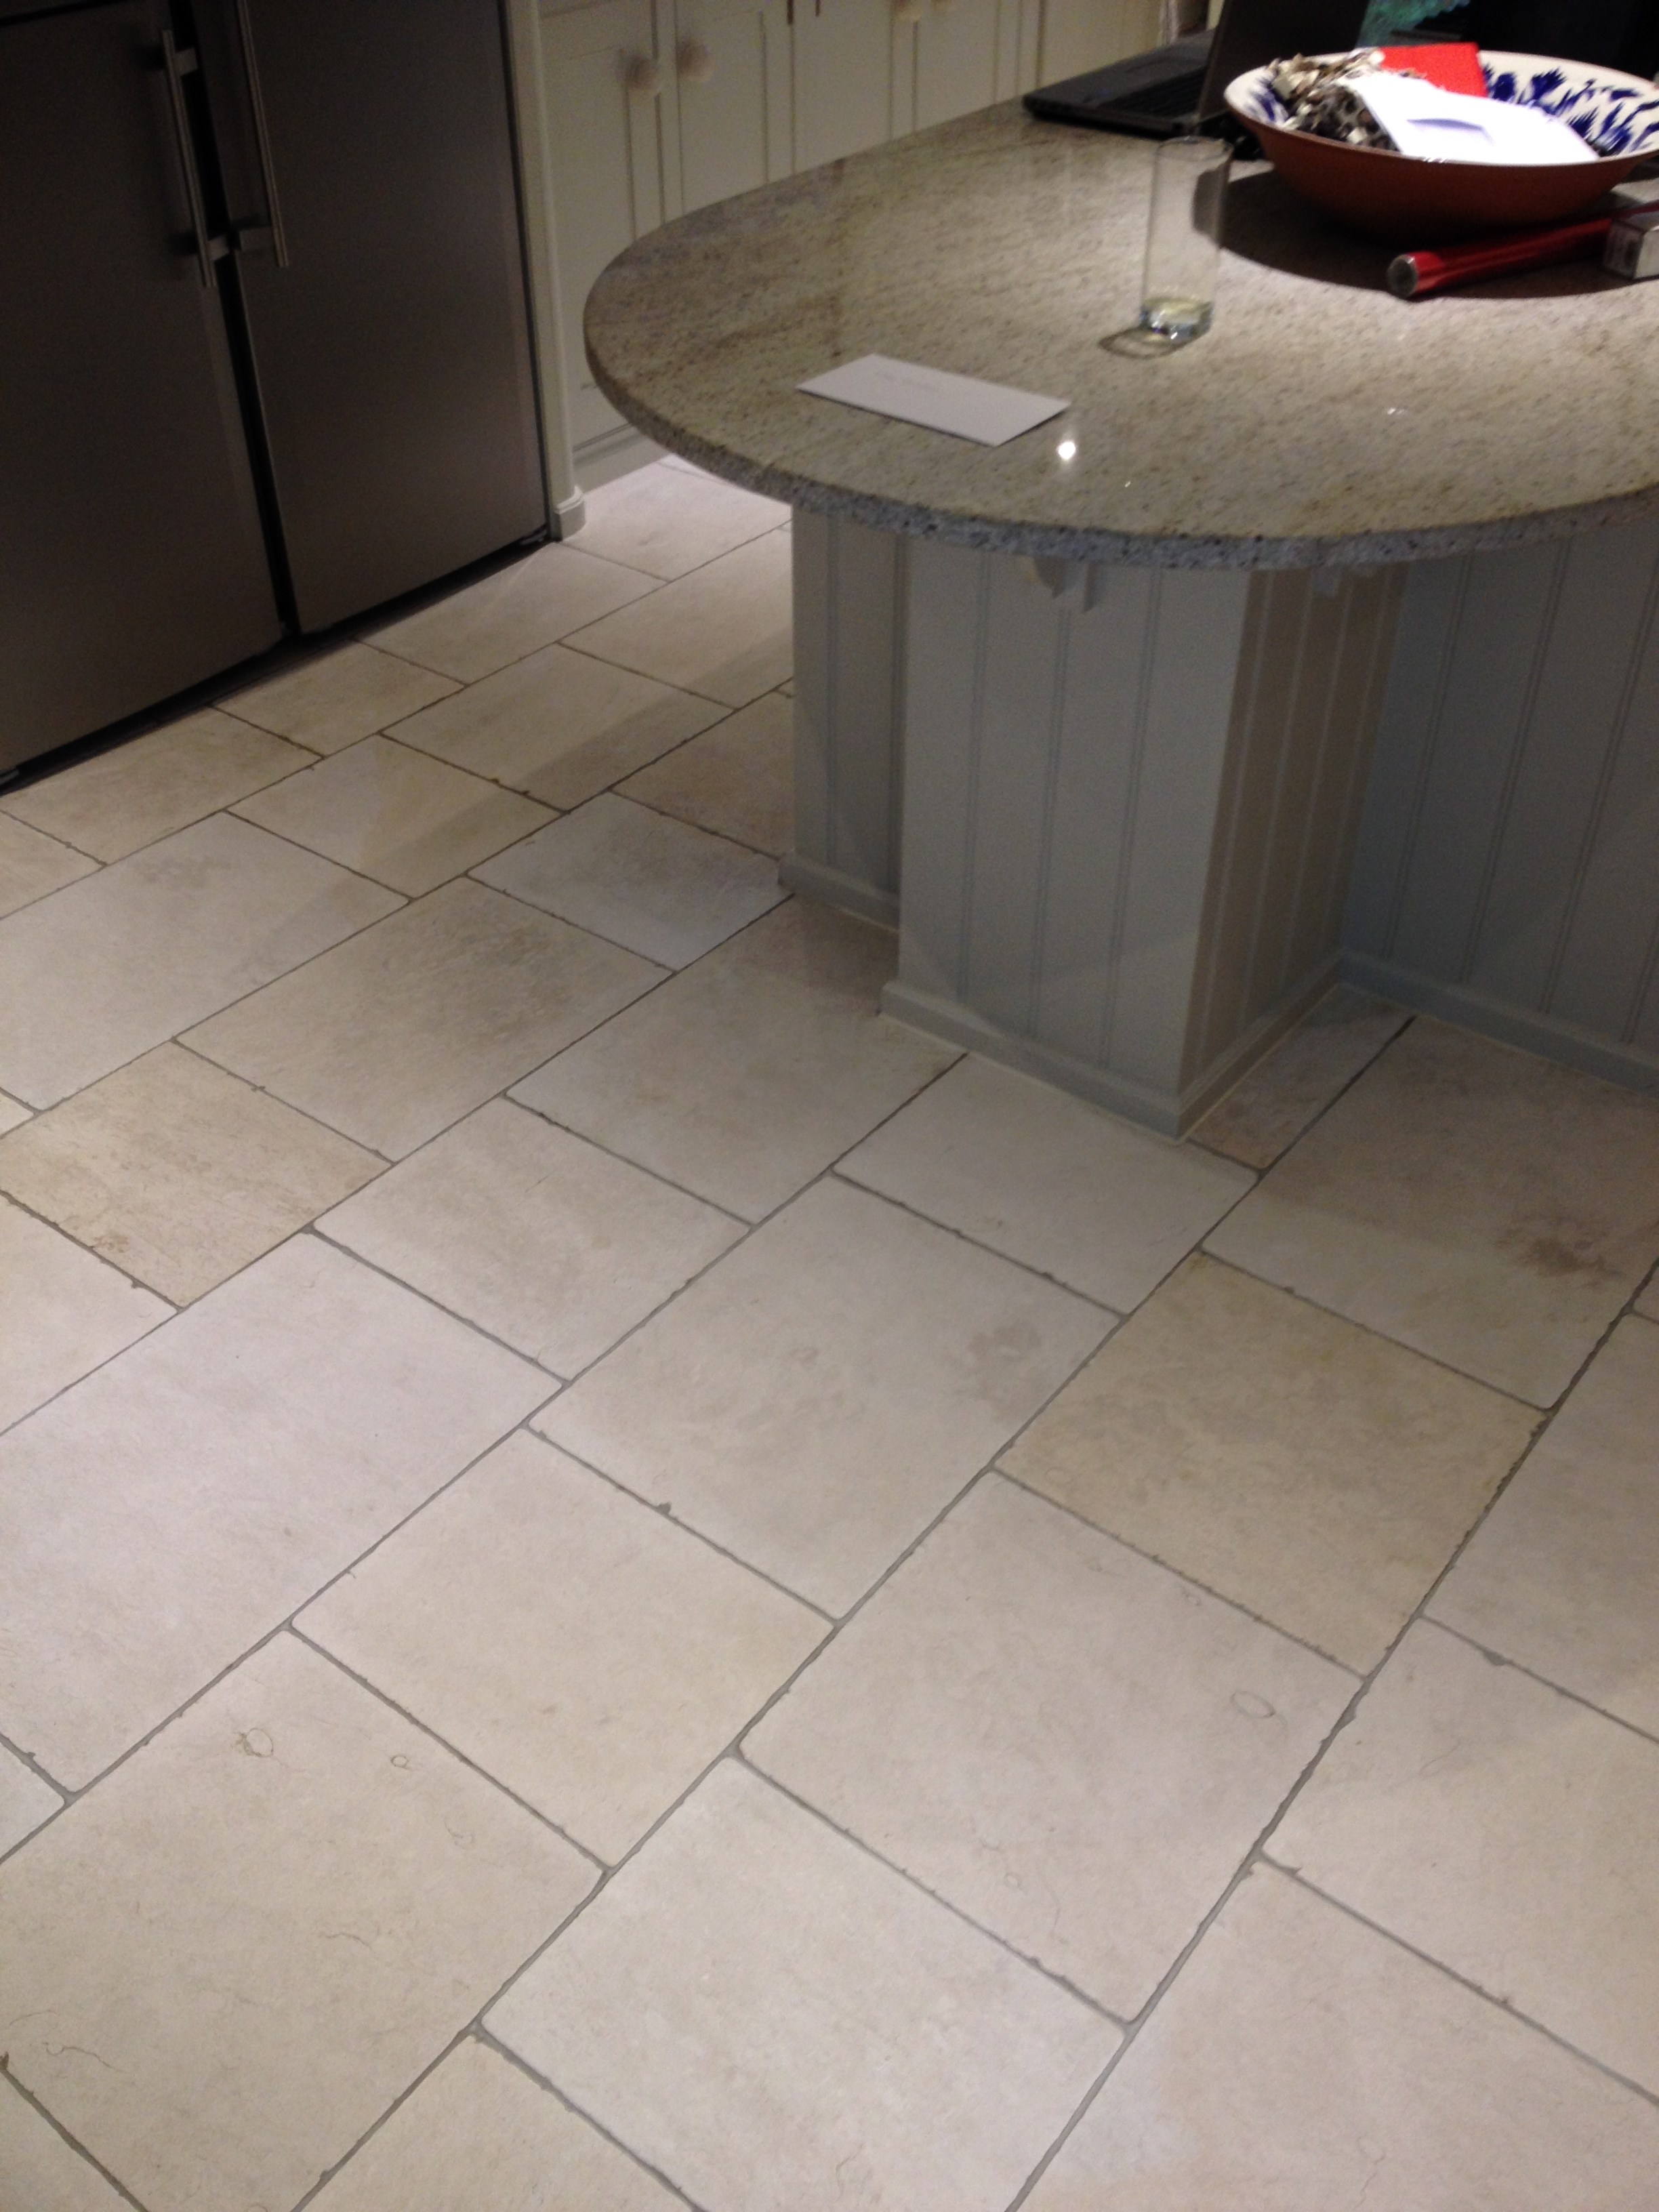 deep cleaning dirty travertine kitchen tiles  stone